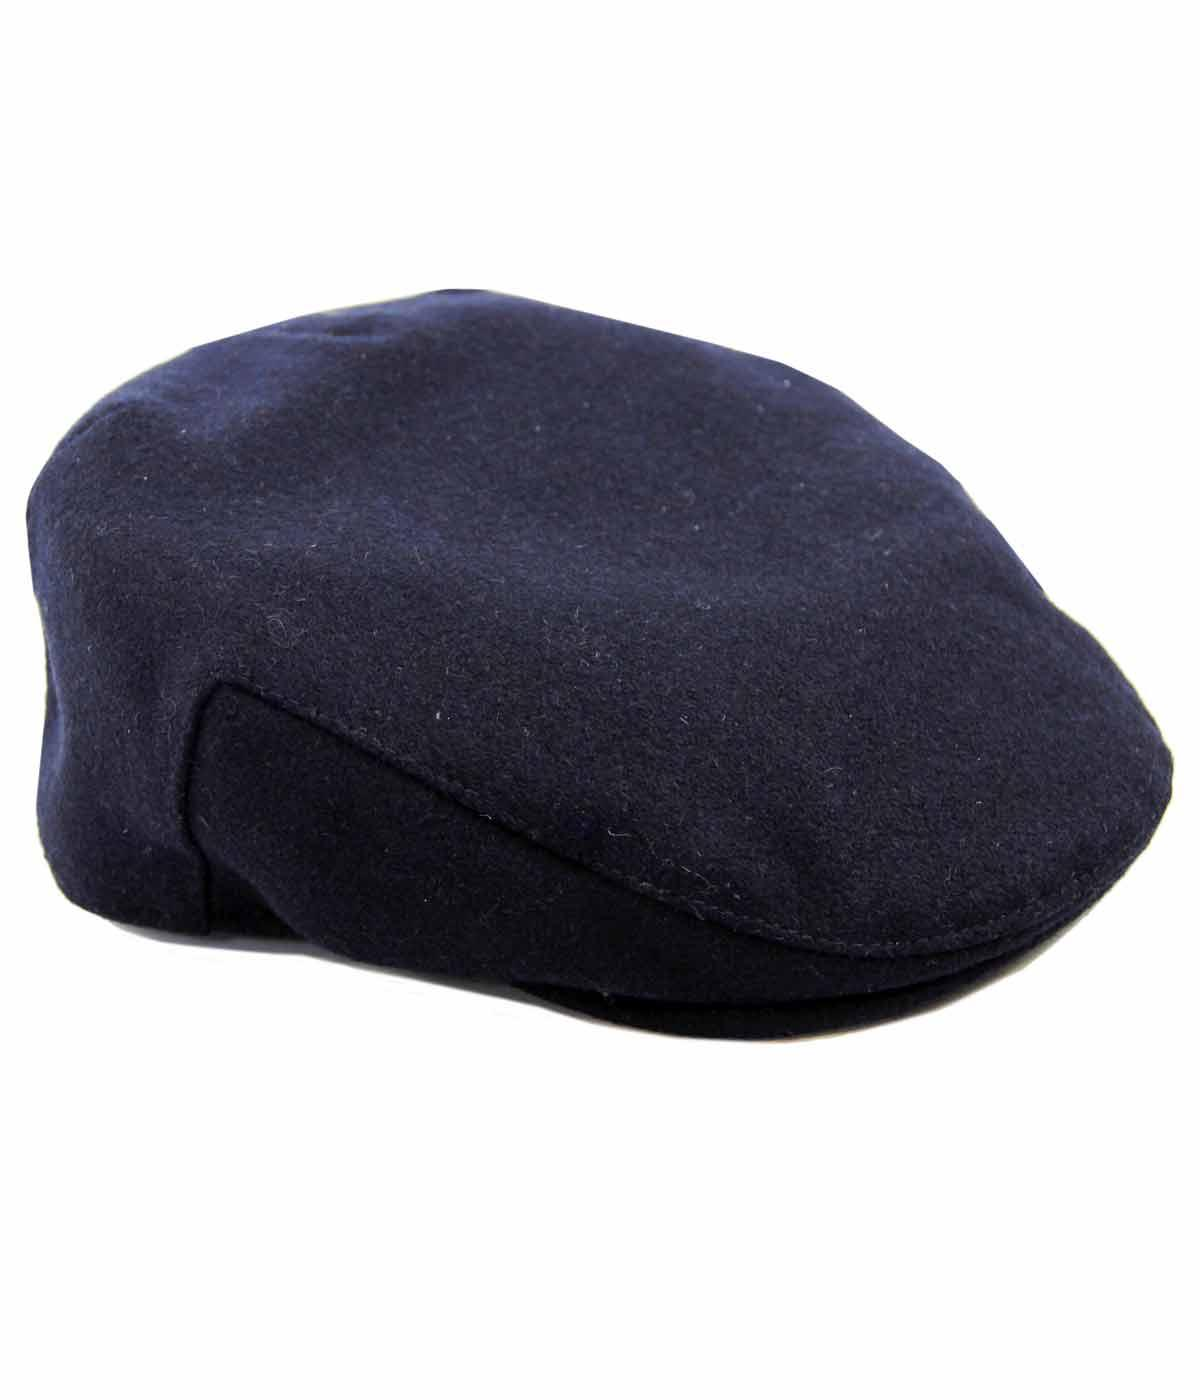 86cc1efe1 FAILSWORTH Melton Wool Retro Mod Flat Cap in Navy